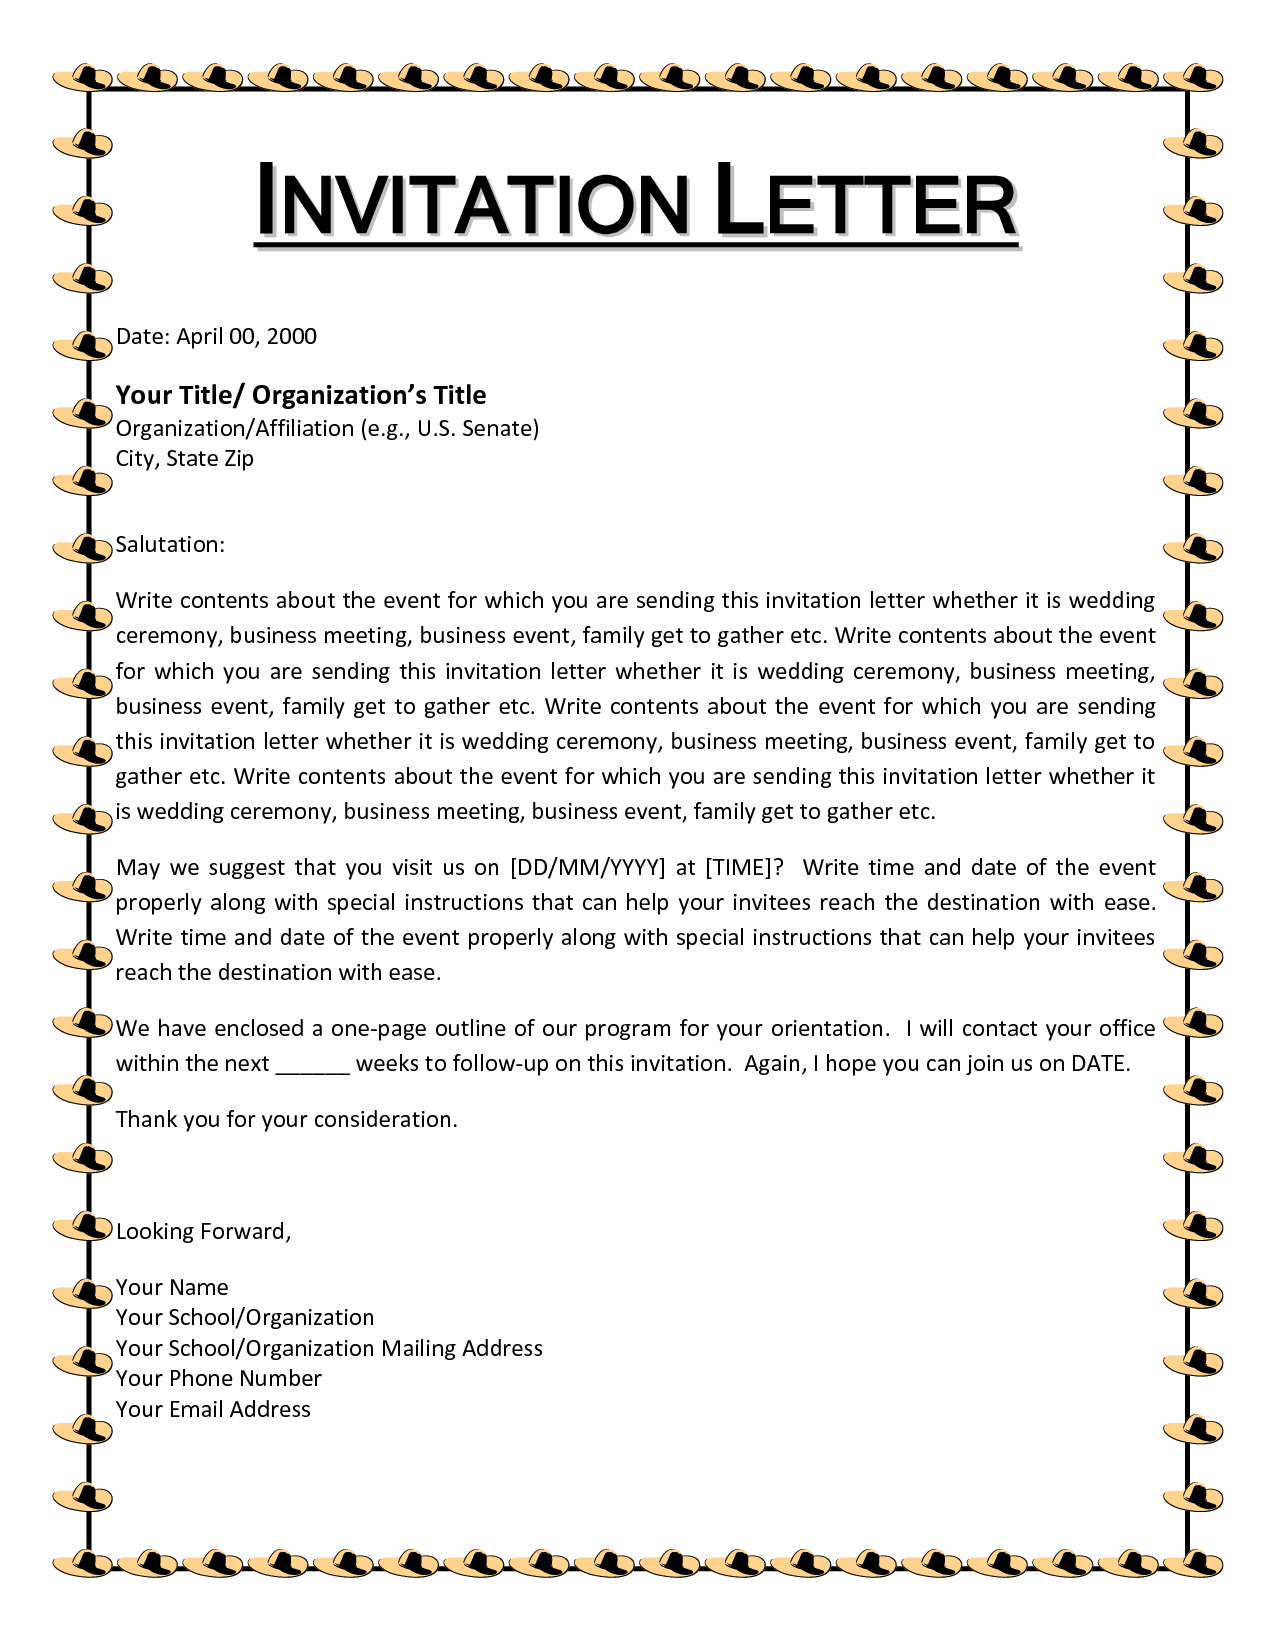 It Is Important To Know The Basics Of The Letter Of Invitation To - Birthday invitation formal letter